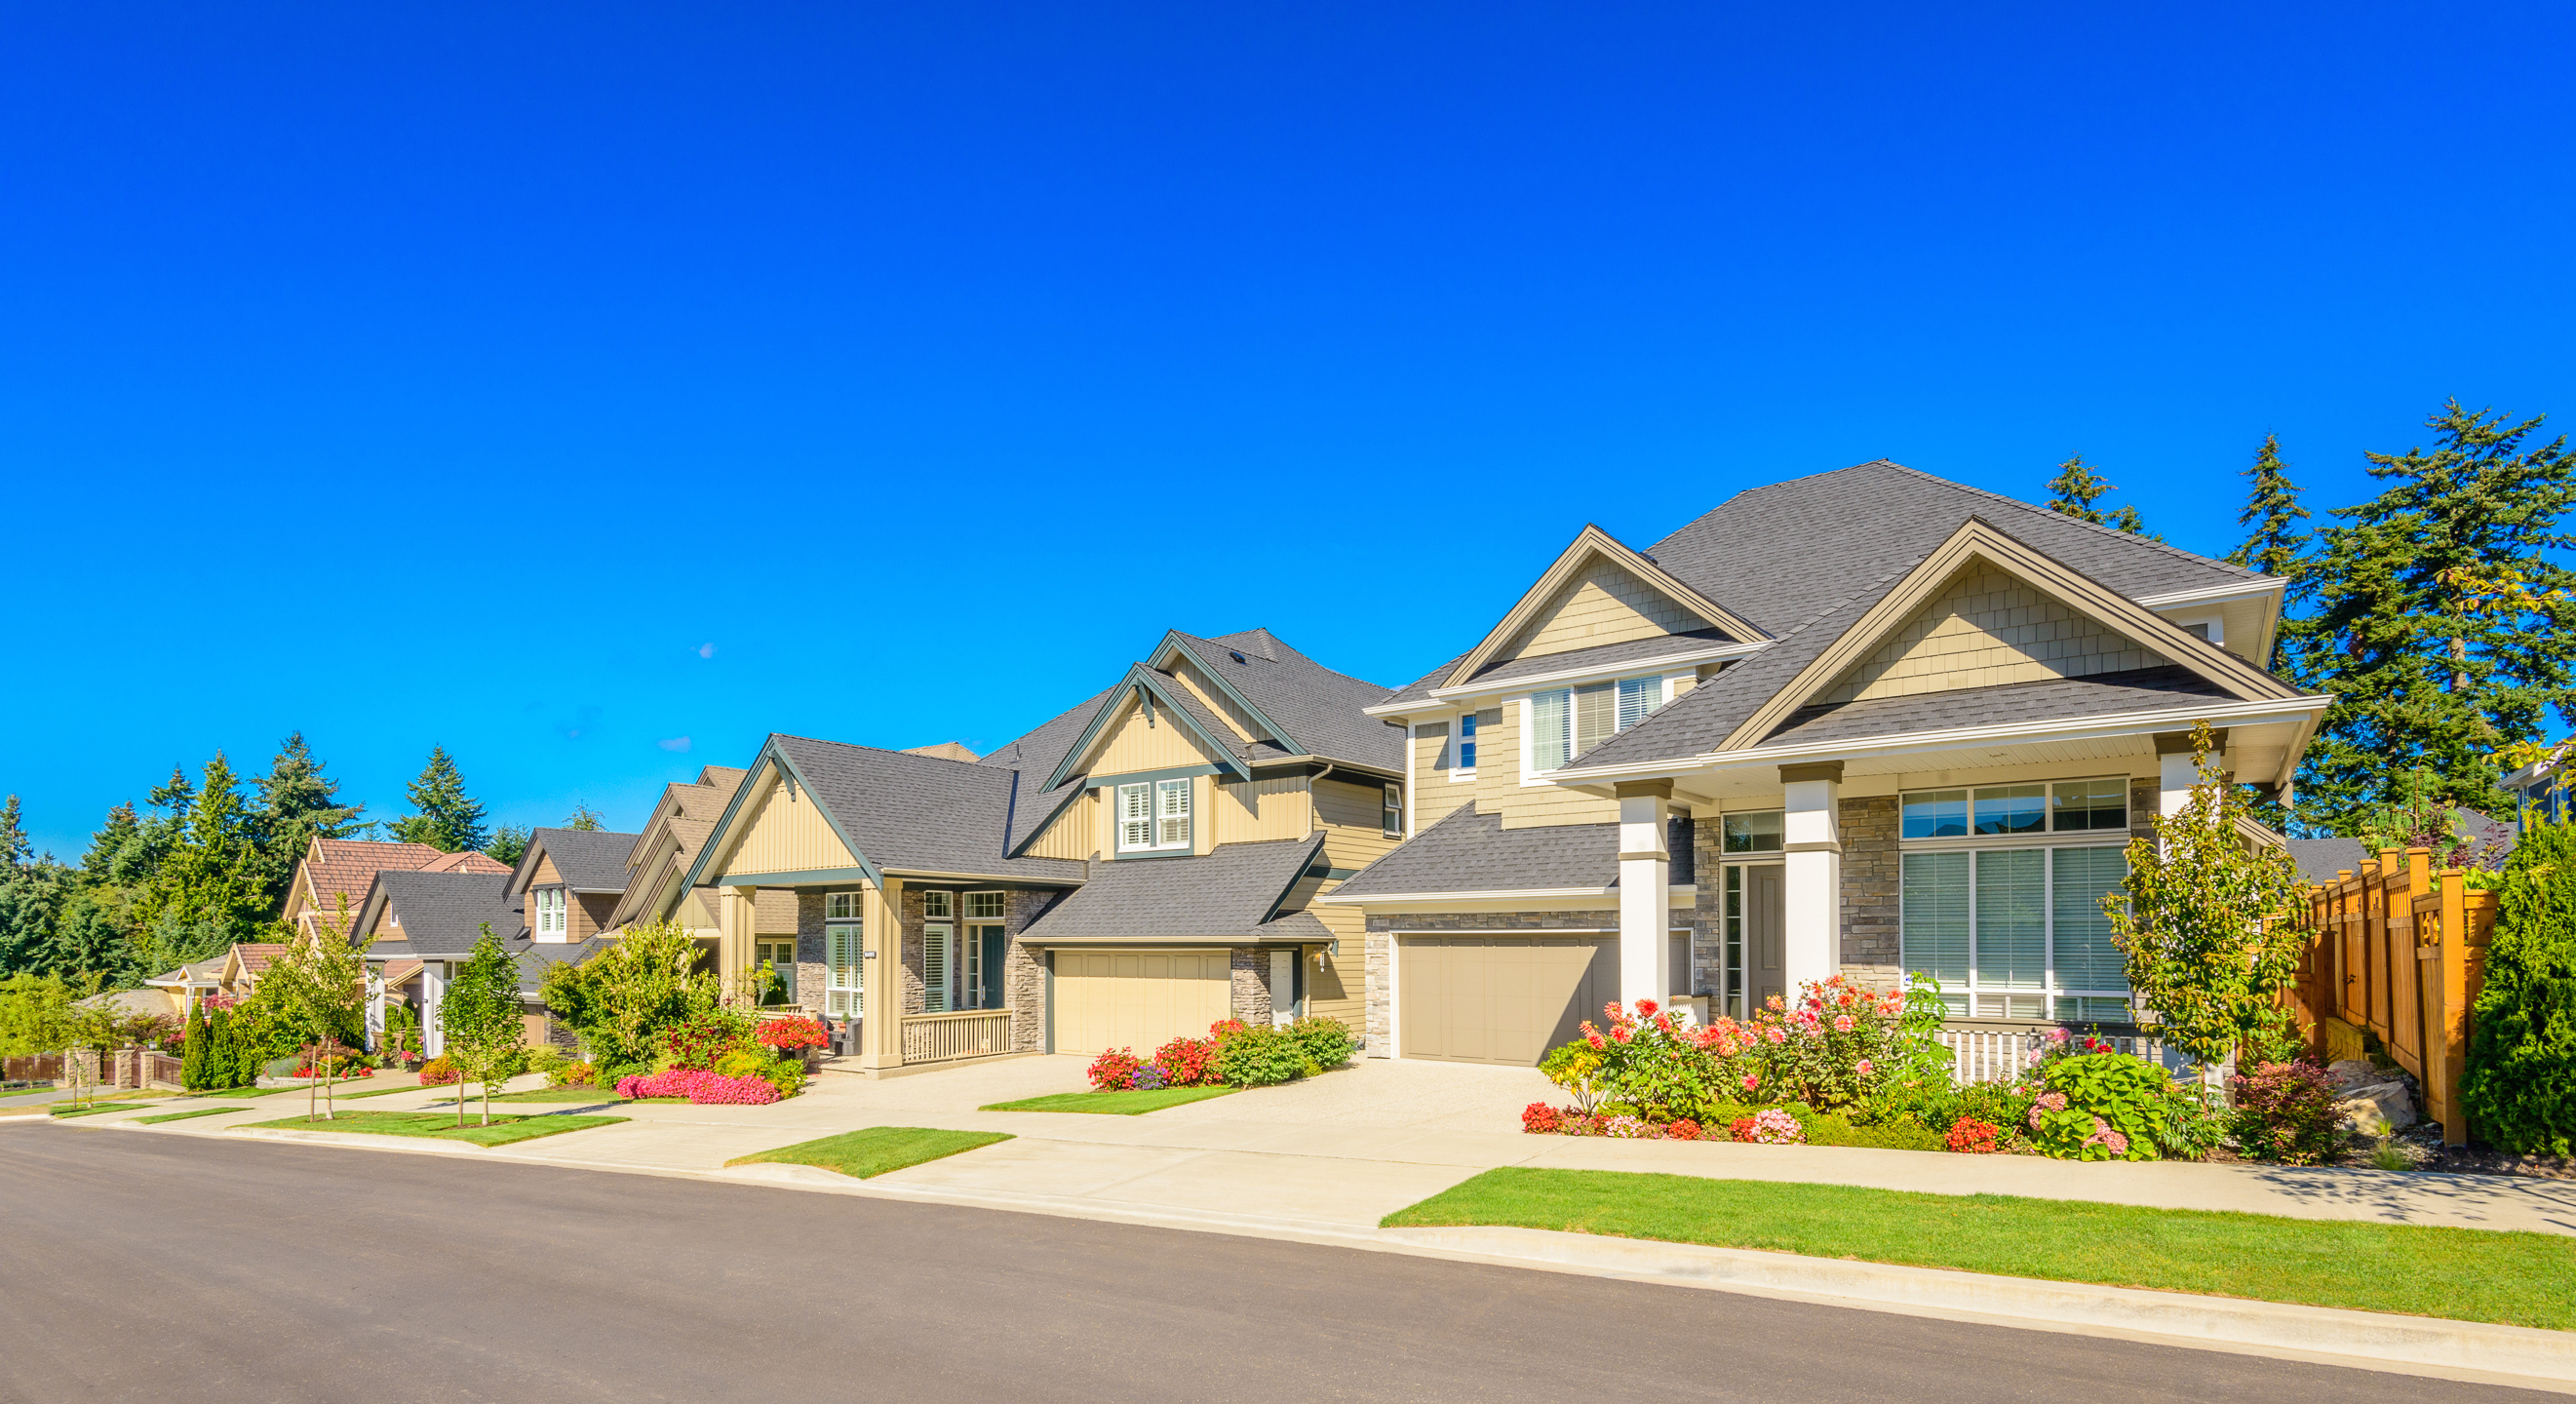 Round lake real estate round lake homes for sale for Build a new house for 100 000